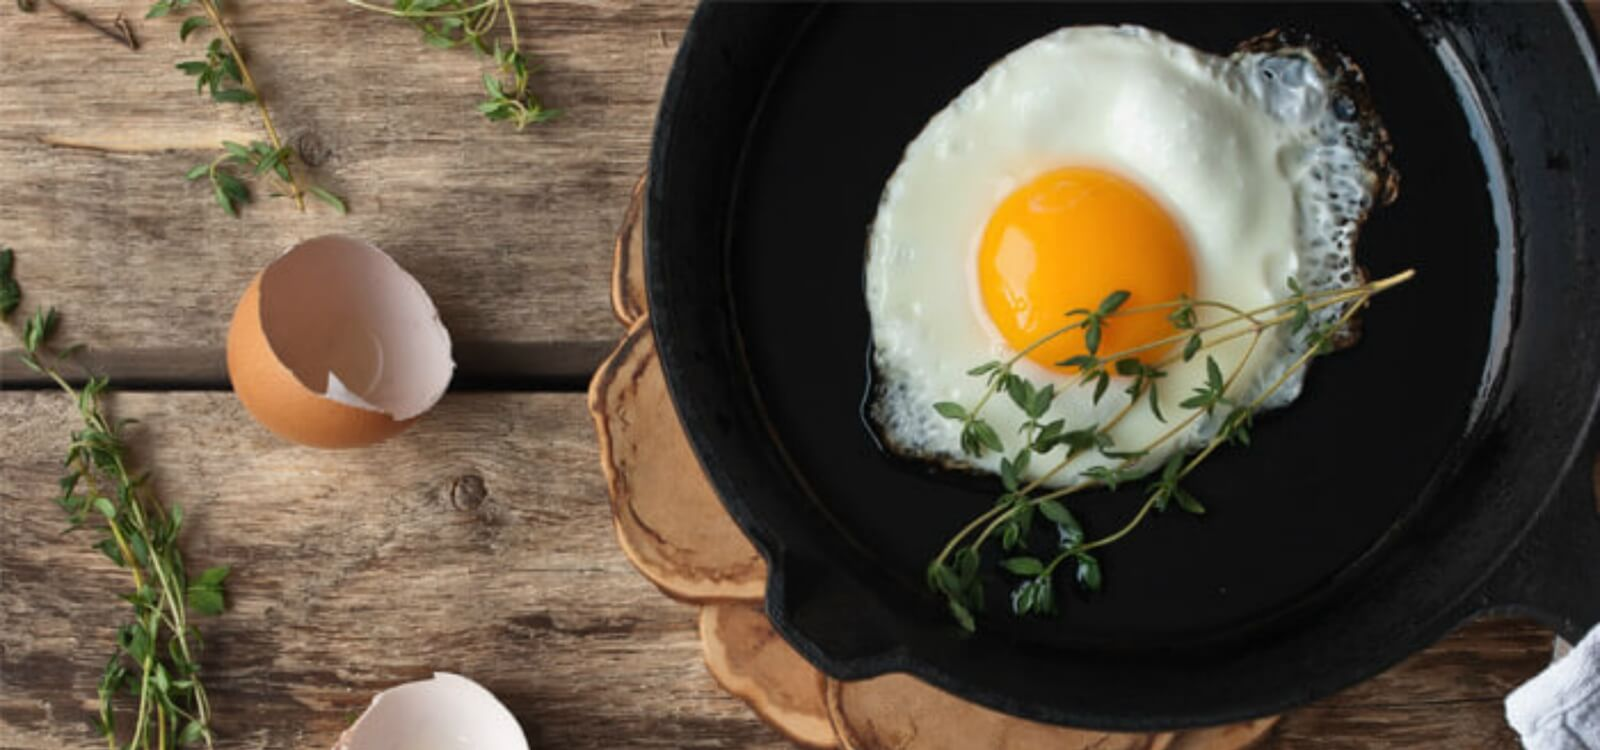 Research Review: Are Whole Eggs Better than Whites for Muscle Growth?